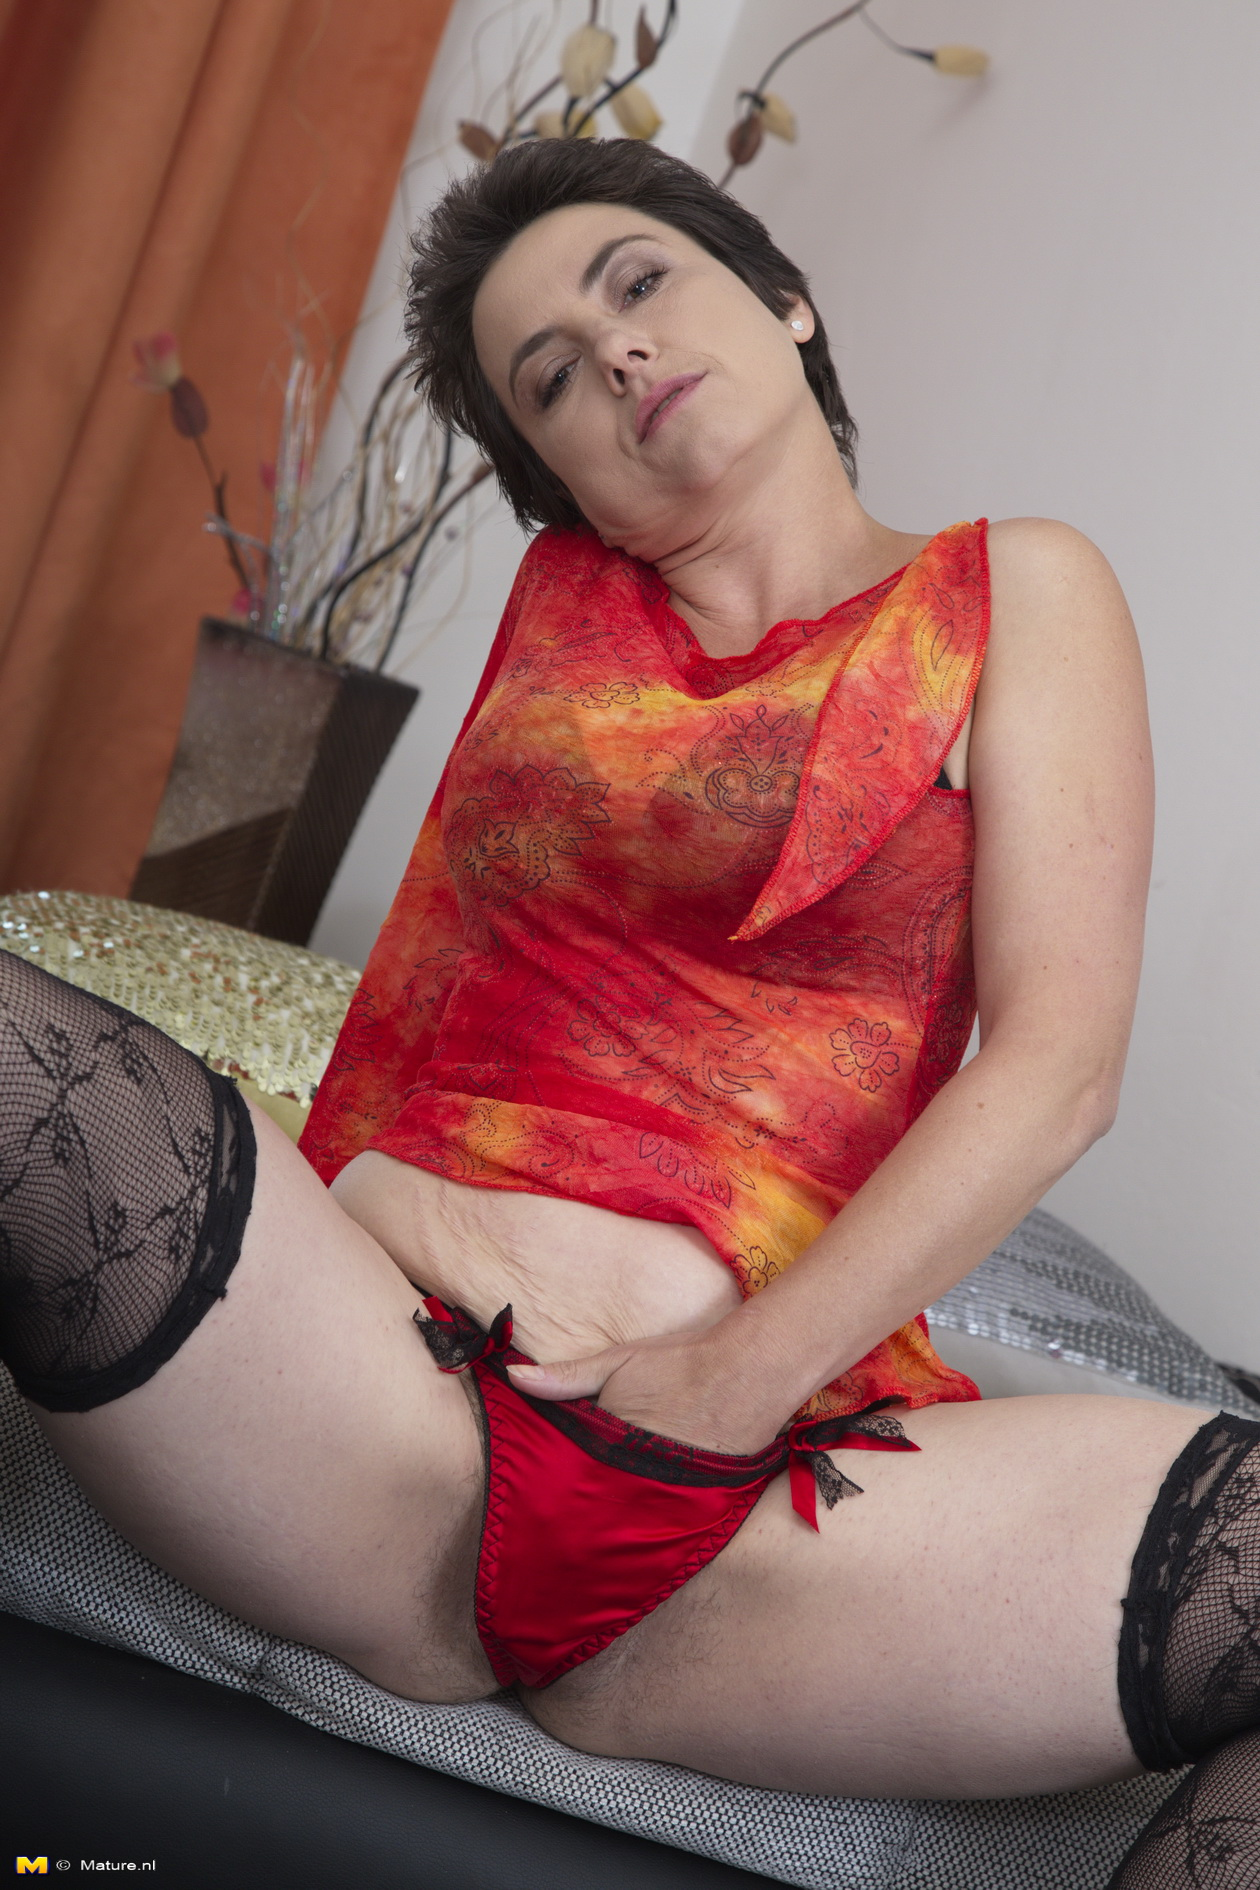 Hairy milfs cristine and artemisia fingering in stockings - 3 part 9